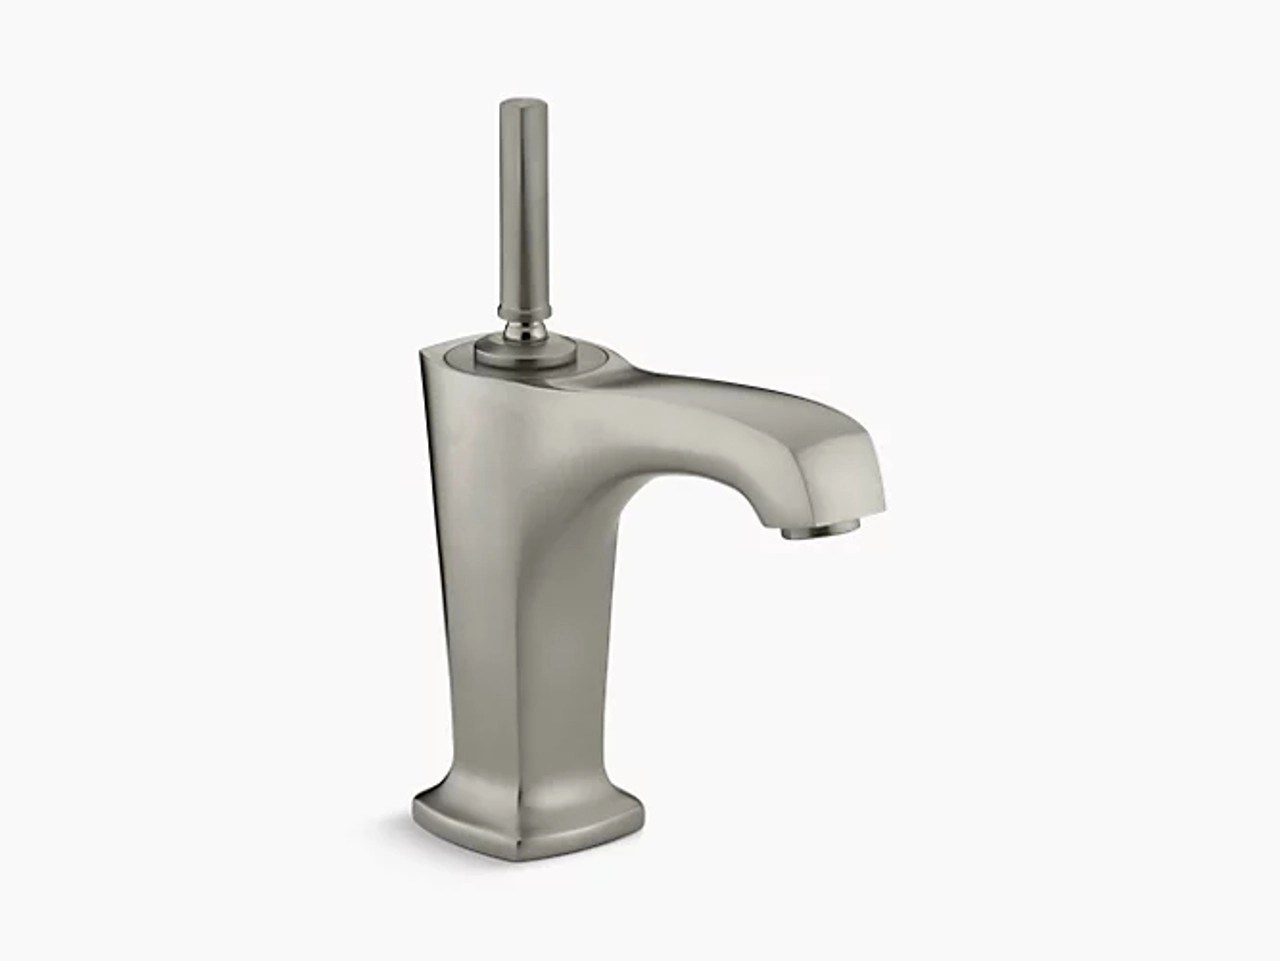 kohler margaux single hole bathroom sink faucet with 5 3 8 spout and lever handle in vibrant brushed nickel